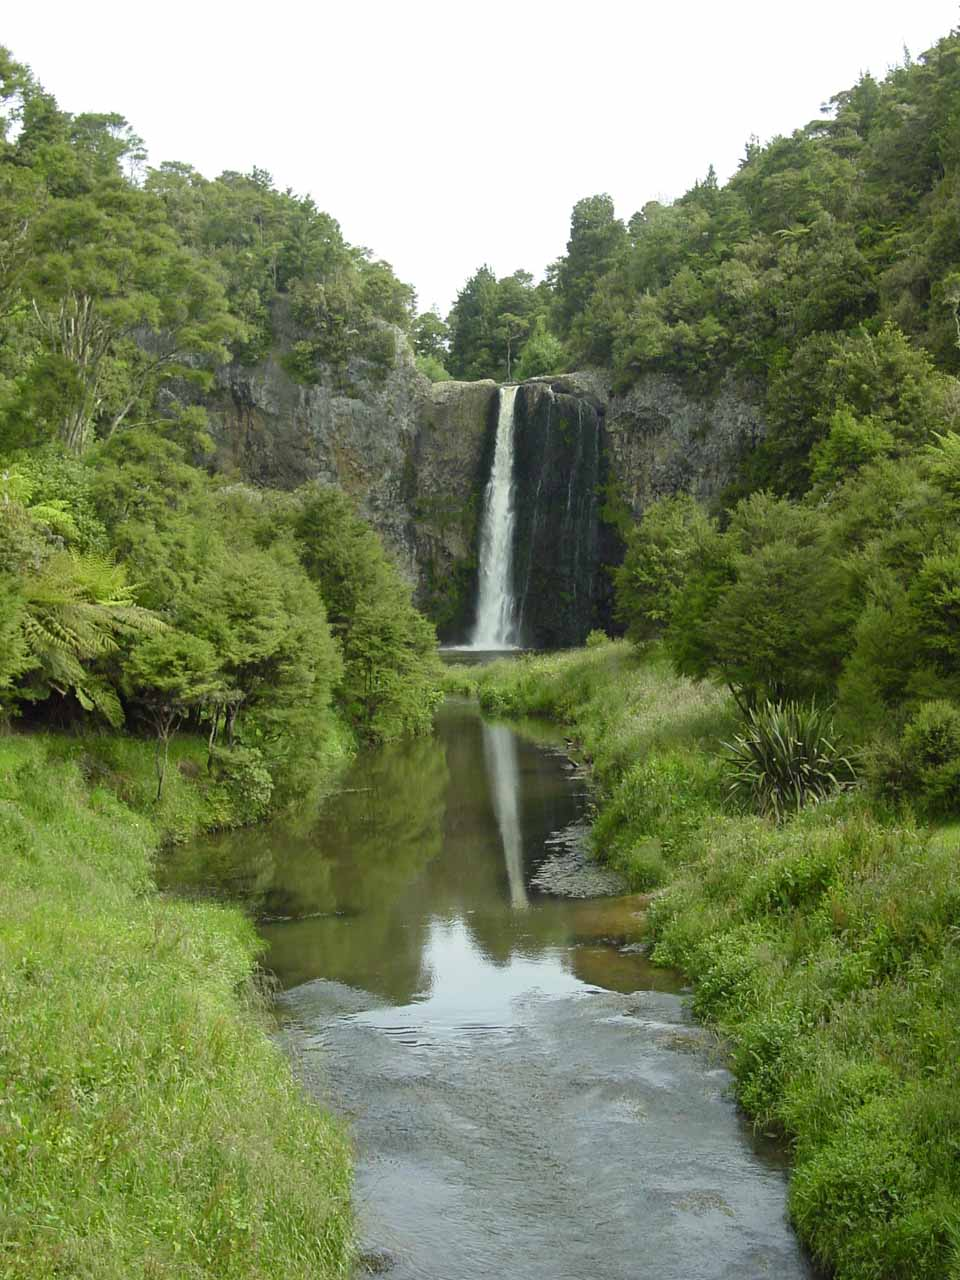 Hunua Falls reflected in the Hunua Stream as seen in December 2004